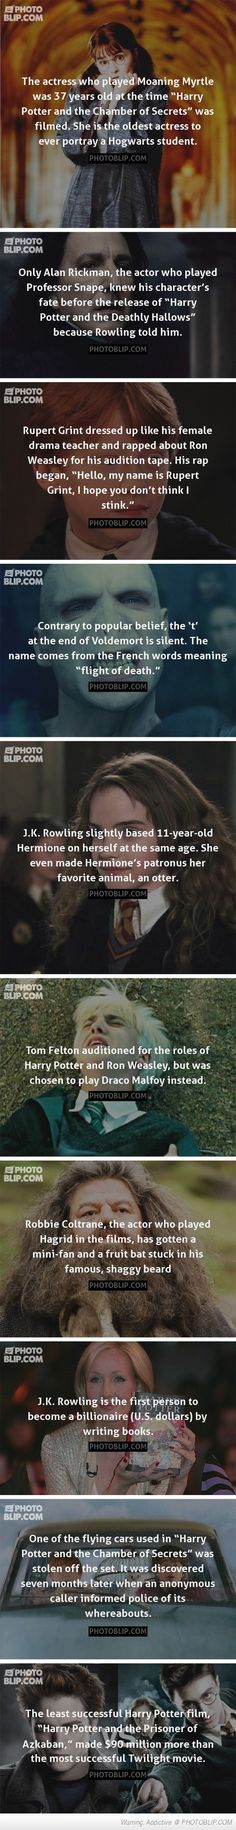 Harry Potter Facts That Will Knock You Off Your Broomstick. And my mom says Harry Potter isnt cool! Harry Potter Jokes, Harry Potter Fandom, Harry Potter World, Fans D'harry Potter, Potter Facts, Harry Potter Fun Facts, Hogwarts, Slytherin, Anecdotes Sur Harry Potter